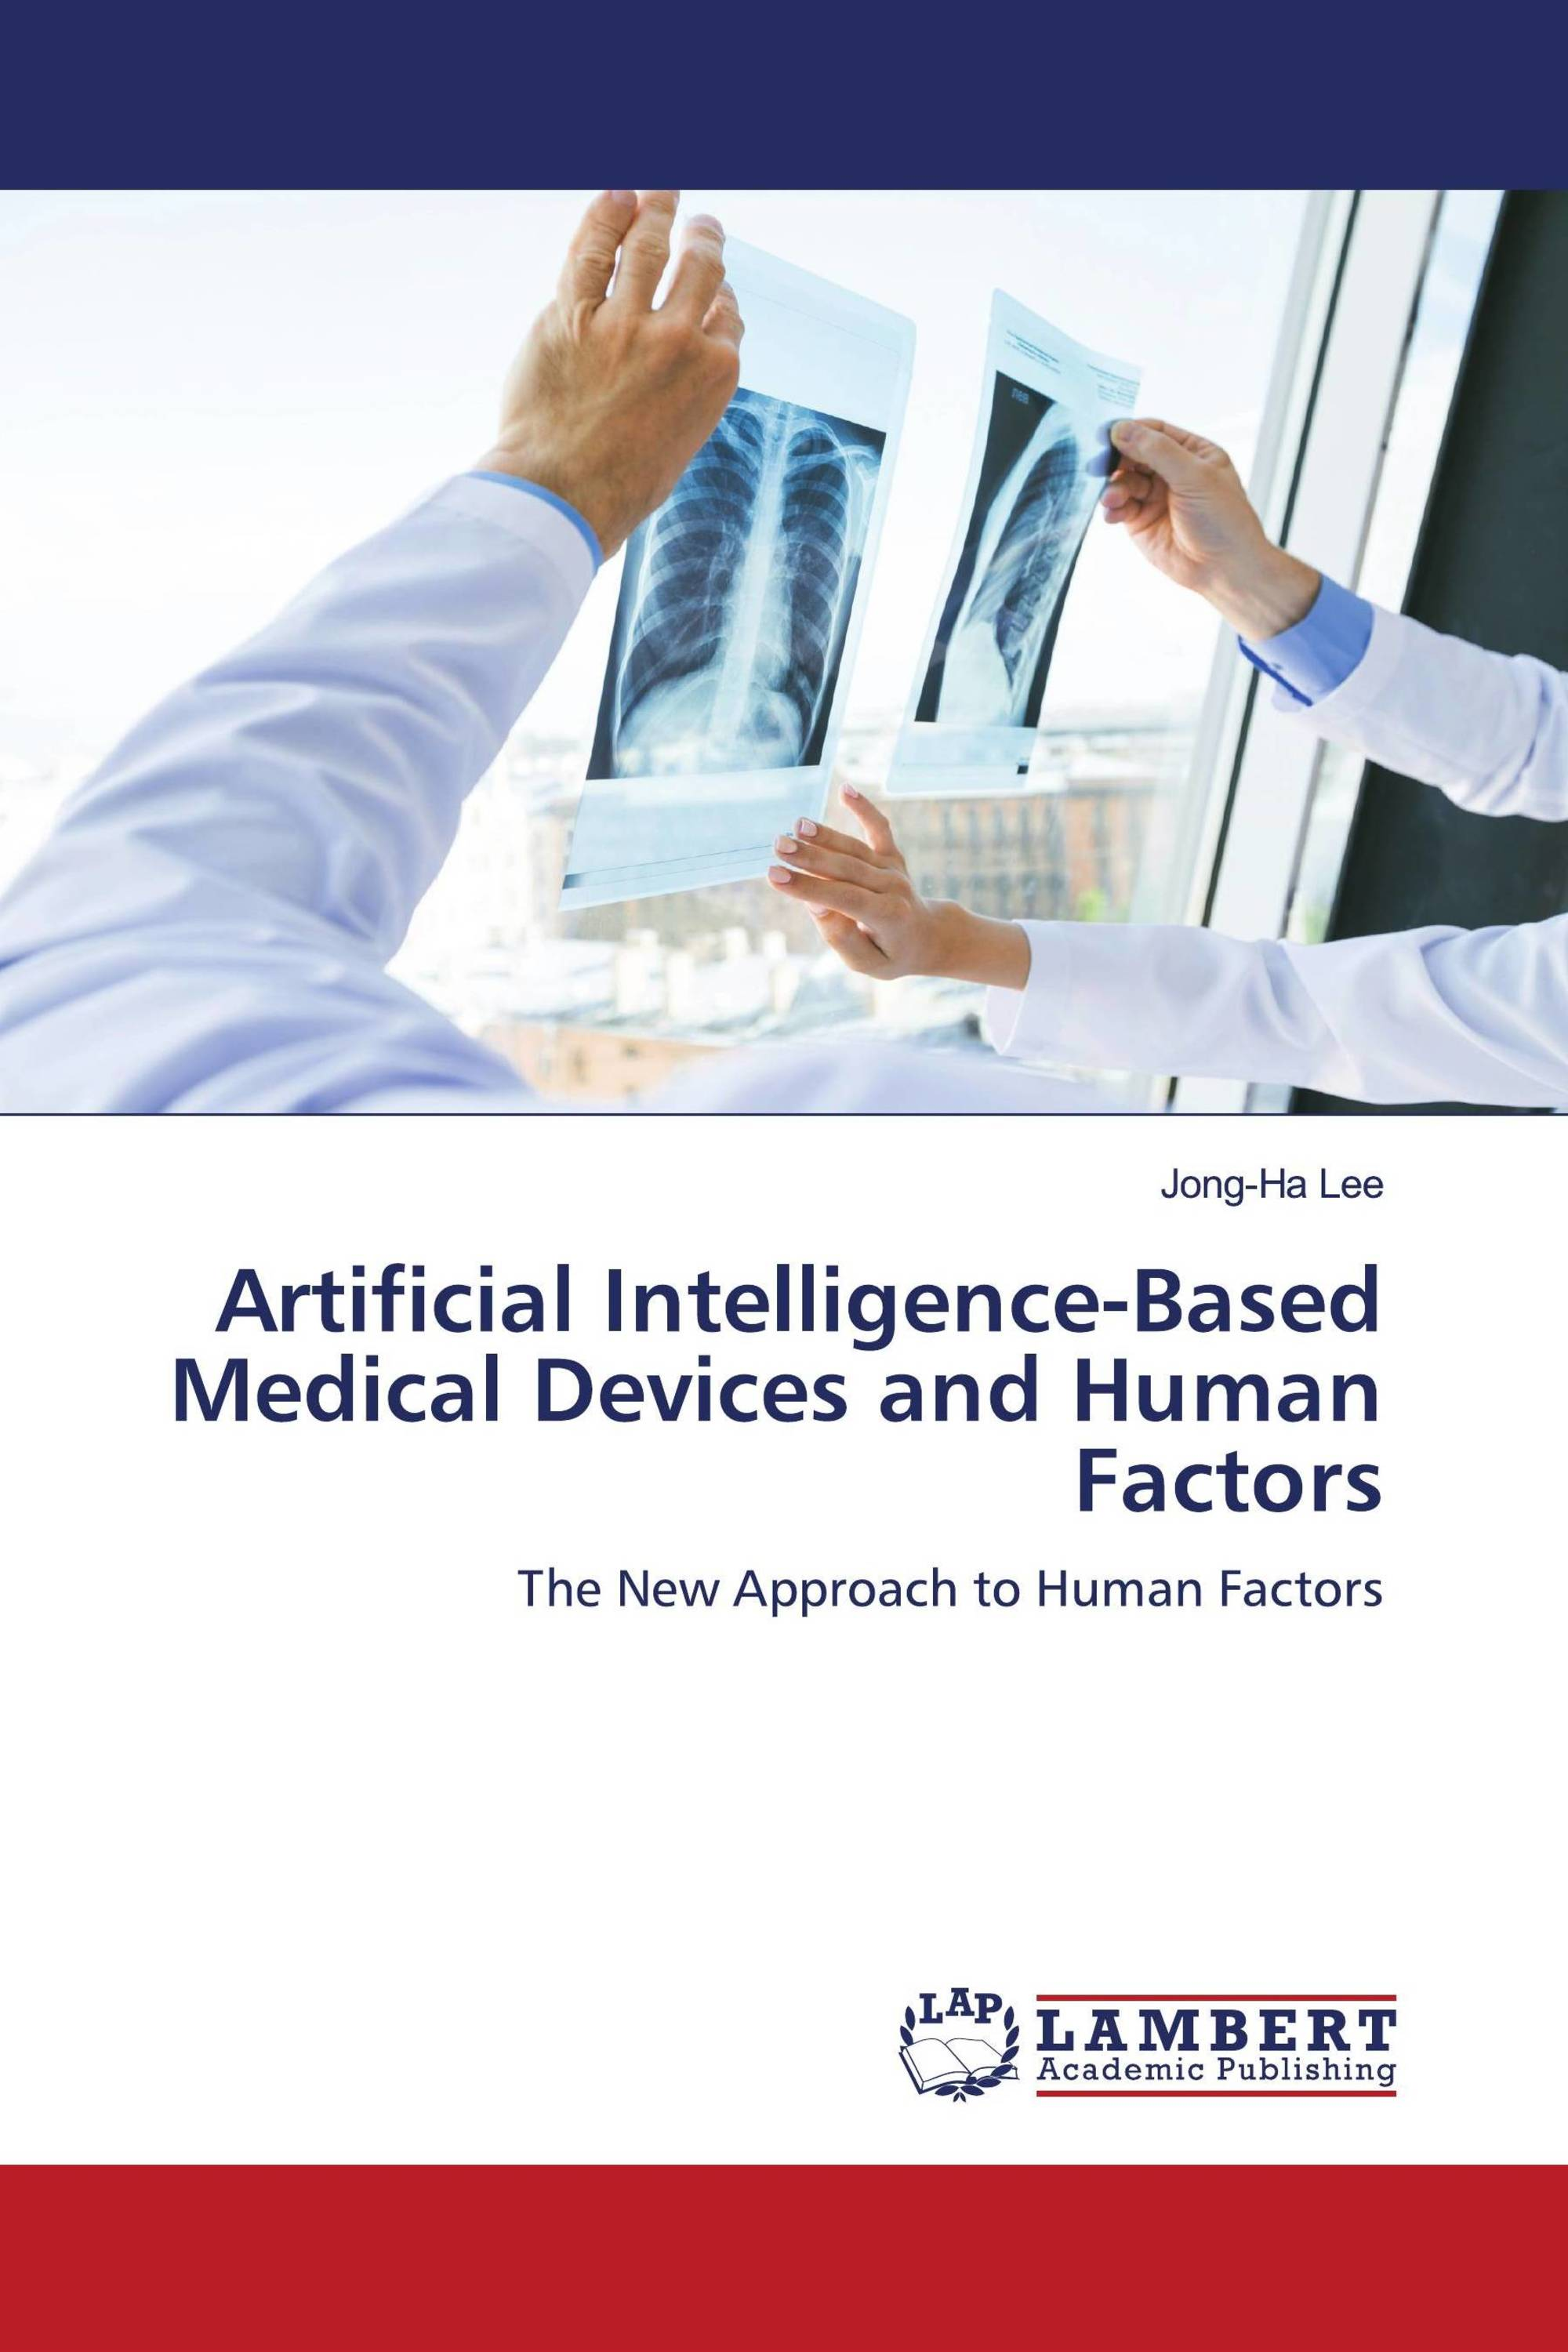 Artificial Intelligence-Based Medical Devices and Human Factors